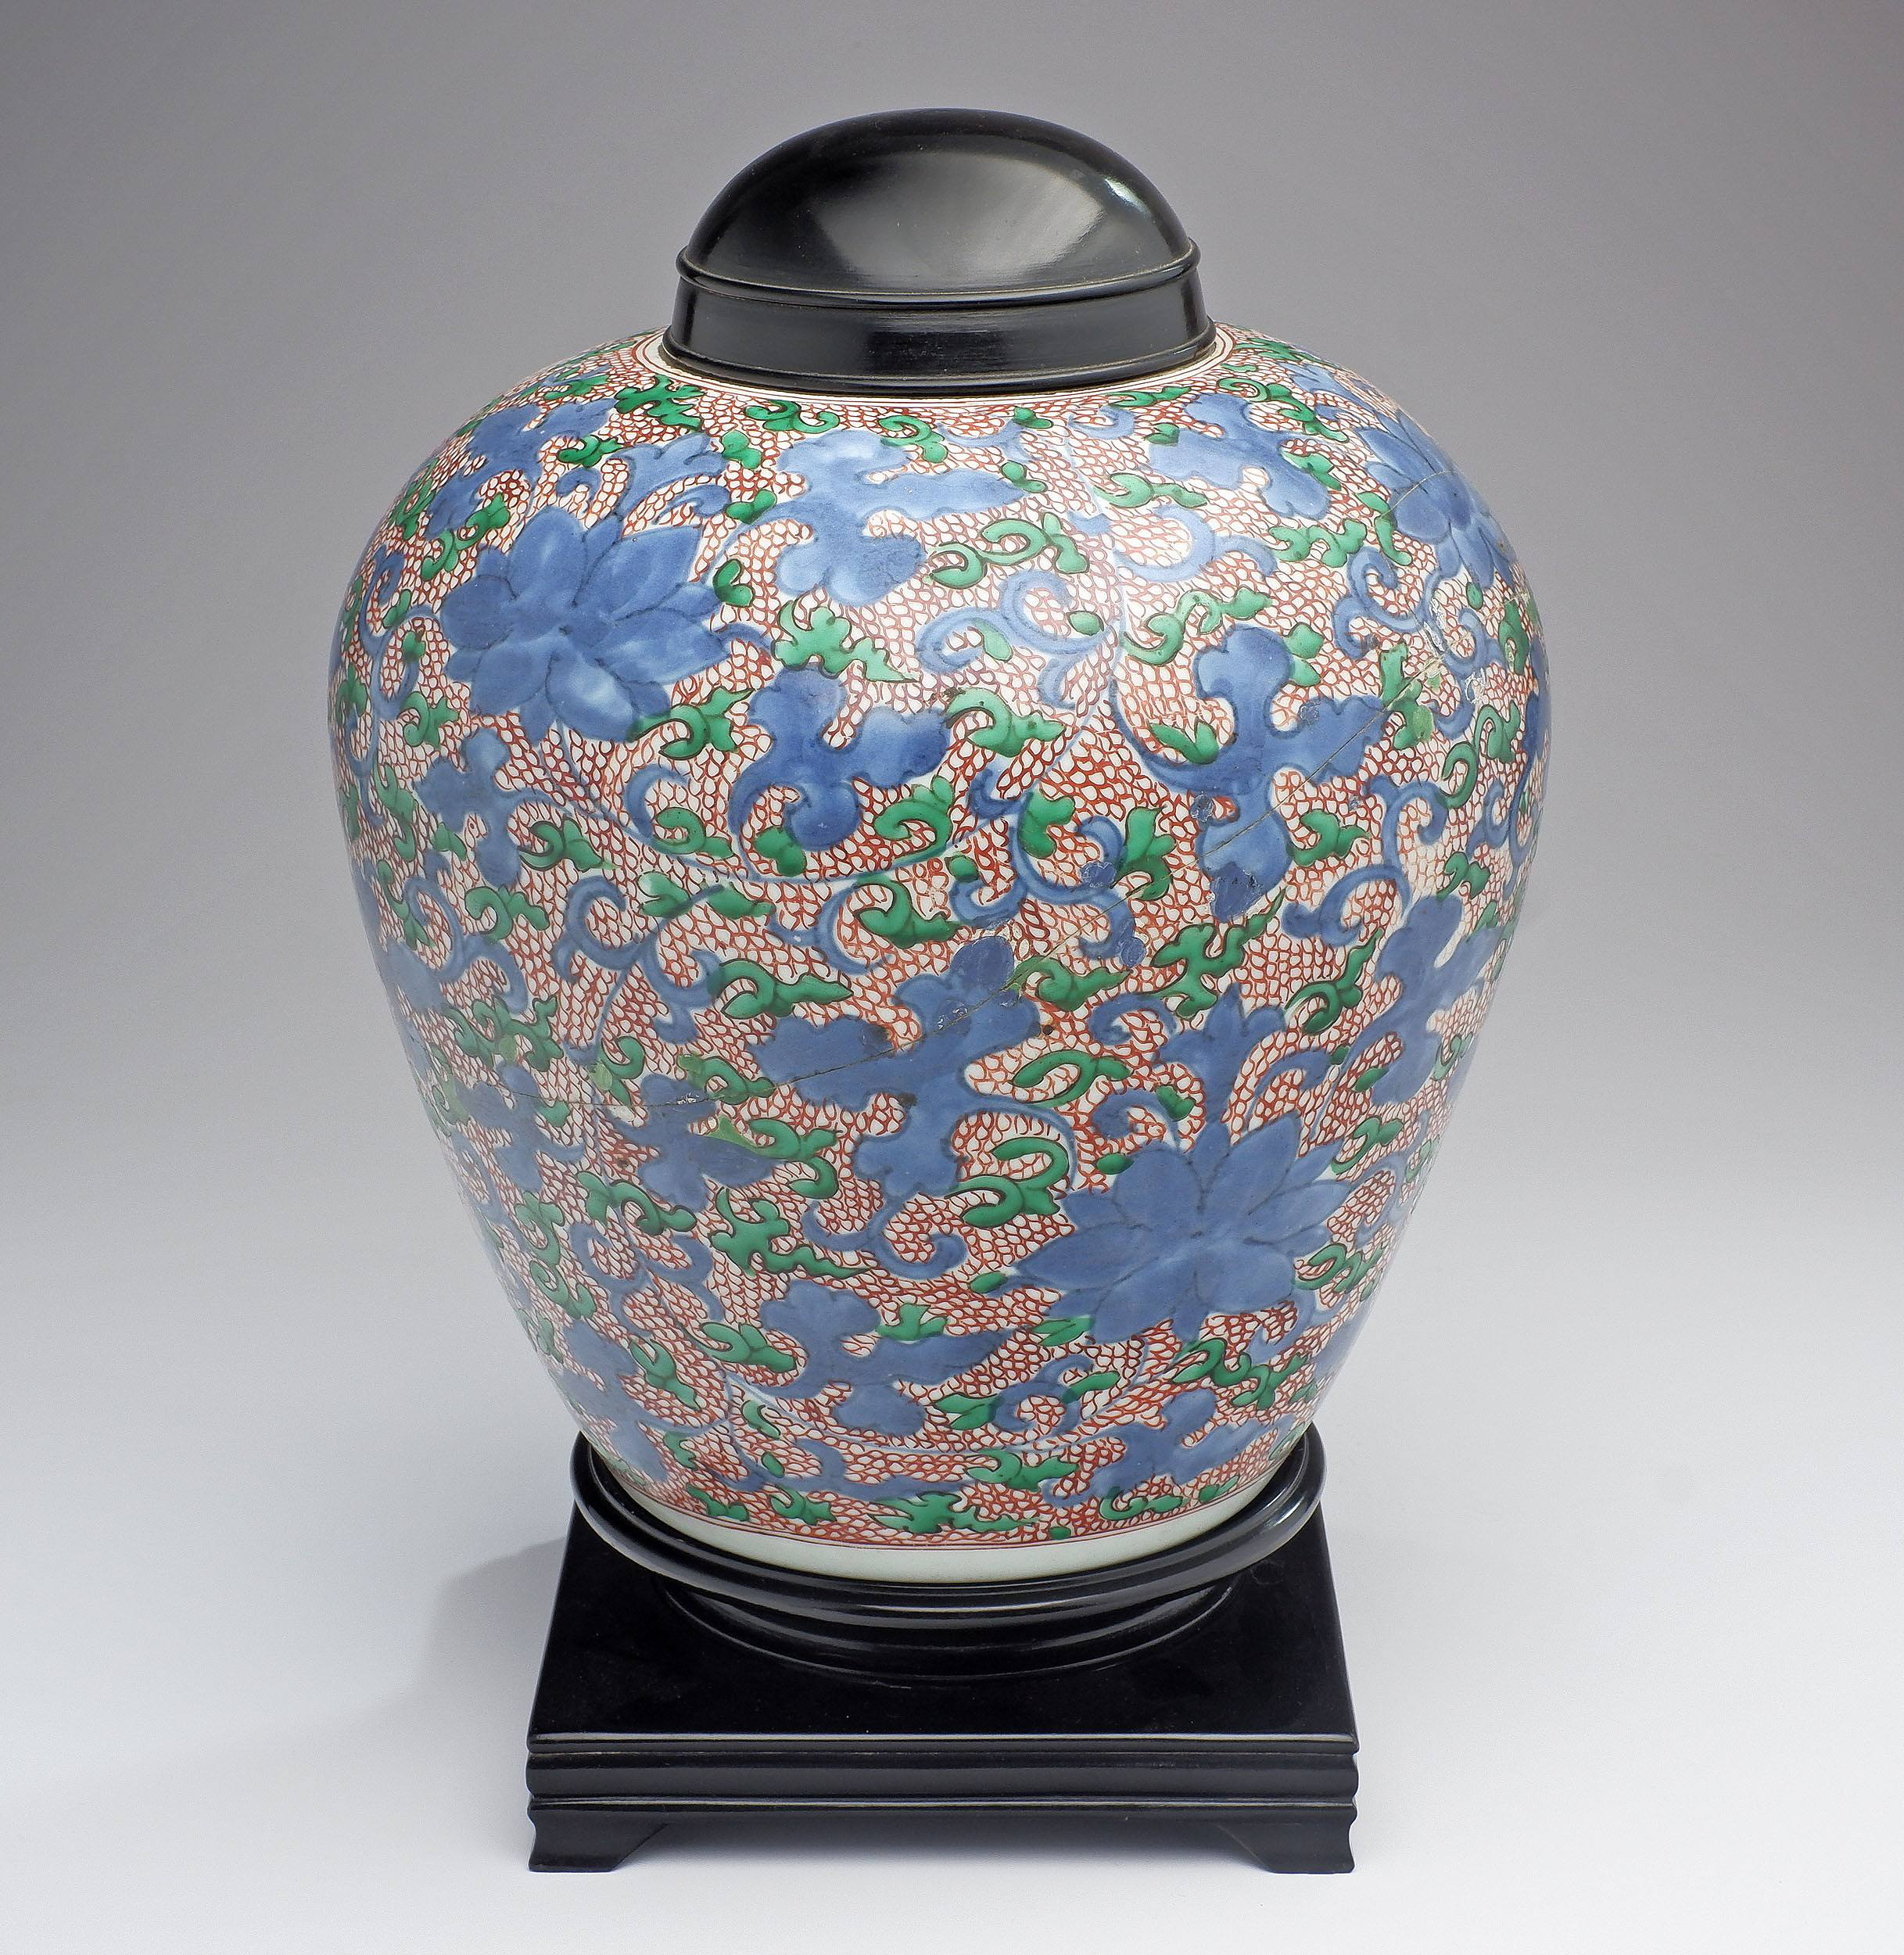 'Chinese Late Ming Wucai Large Jar Decorated with Lotus in Underglaze Blue, Late 16th/17th Century'